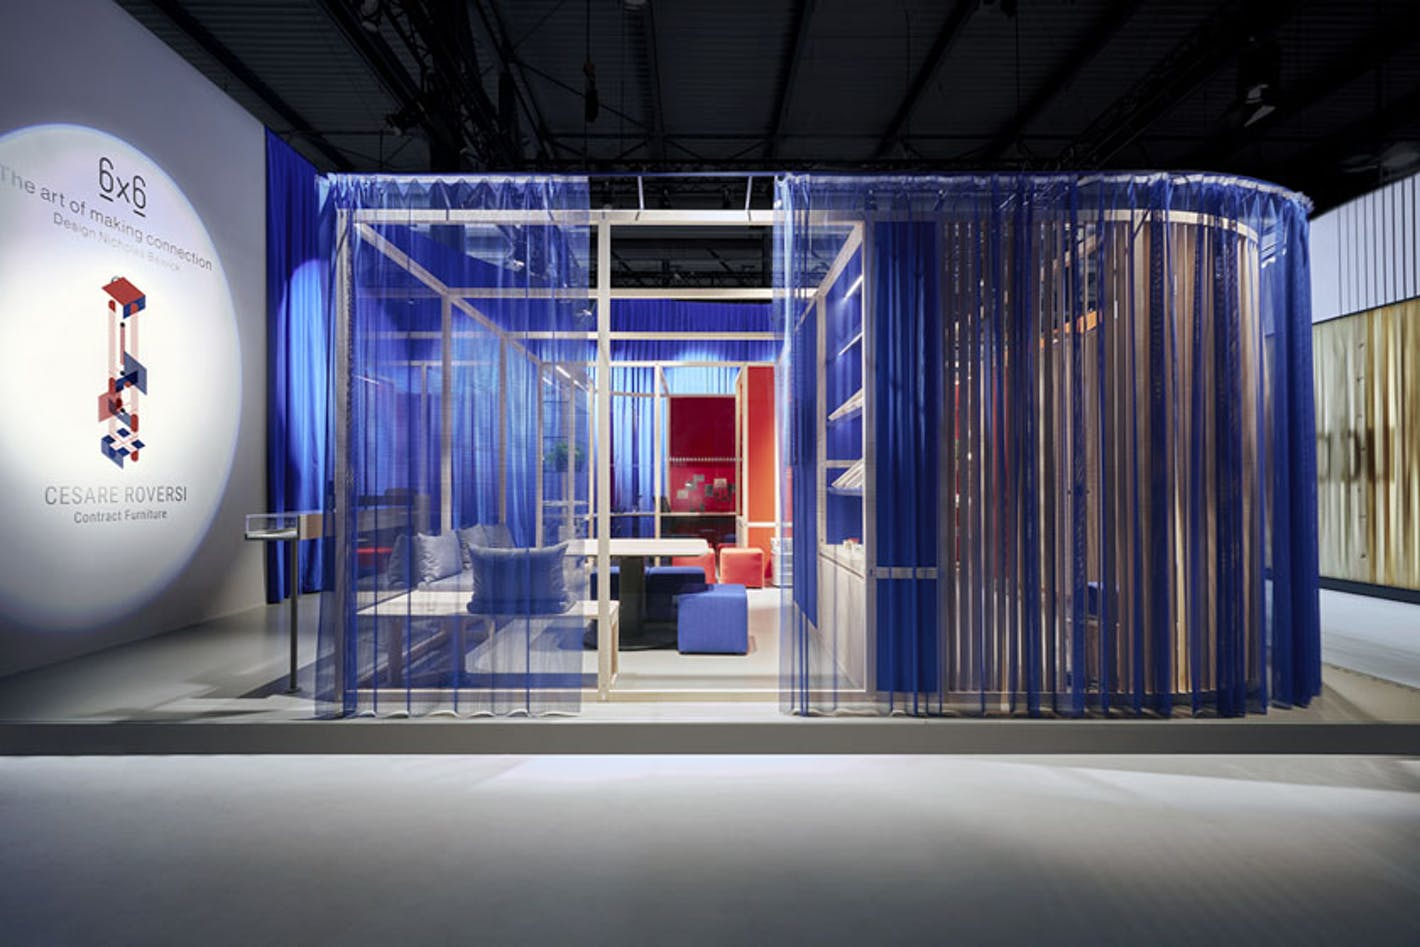 living room gallery installation surrounded by translucent blue fabric